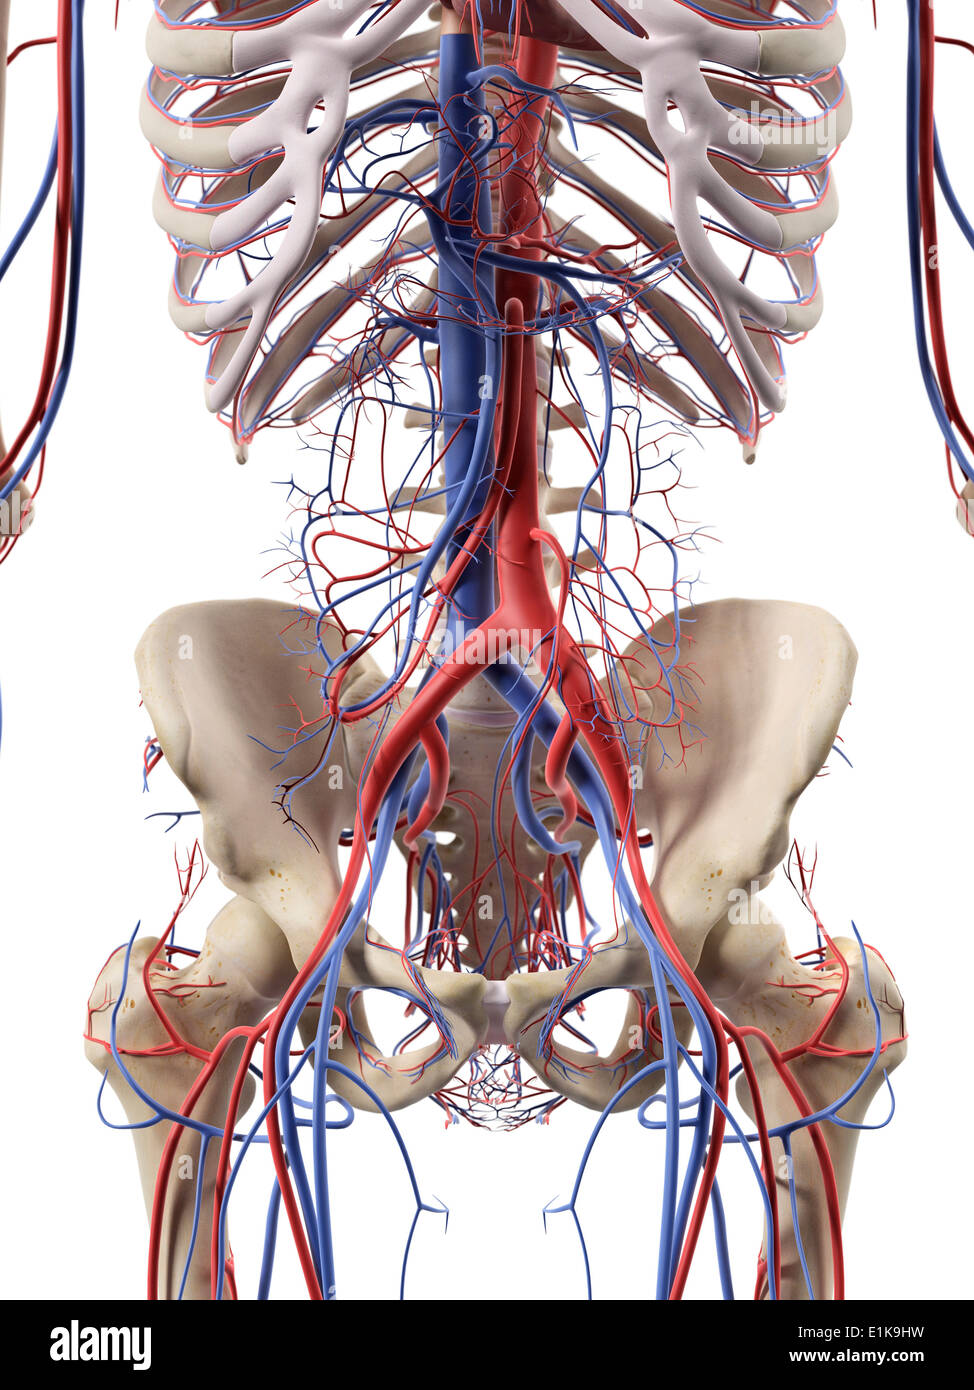 Human Abdominal Blood Vessels Computer Artwork Stock Photo 69880773